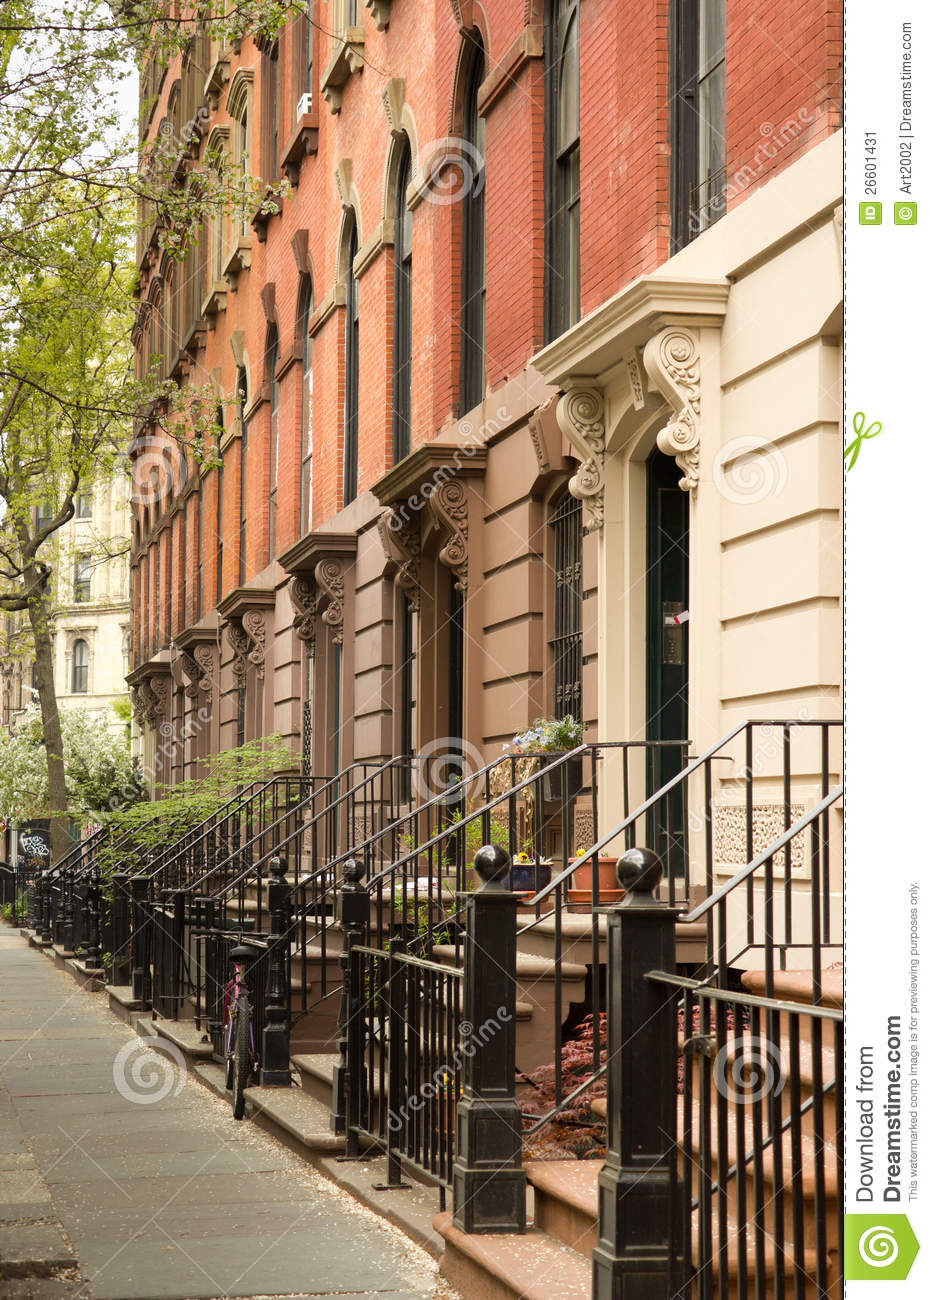 Row of apartments in greenwich village nyc stock image for Nyc greenwich village apartments